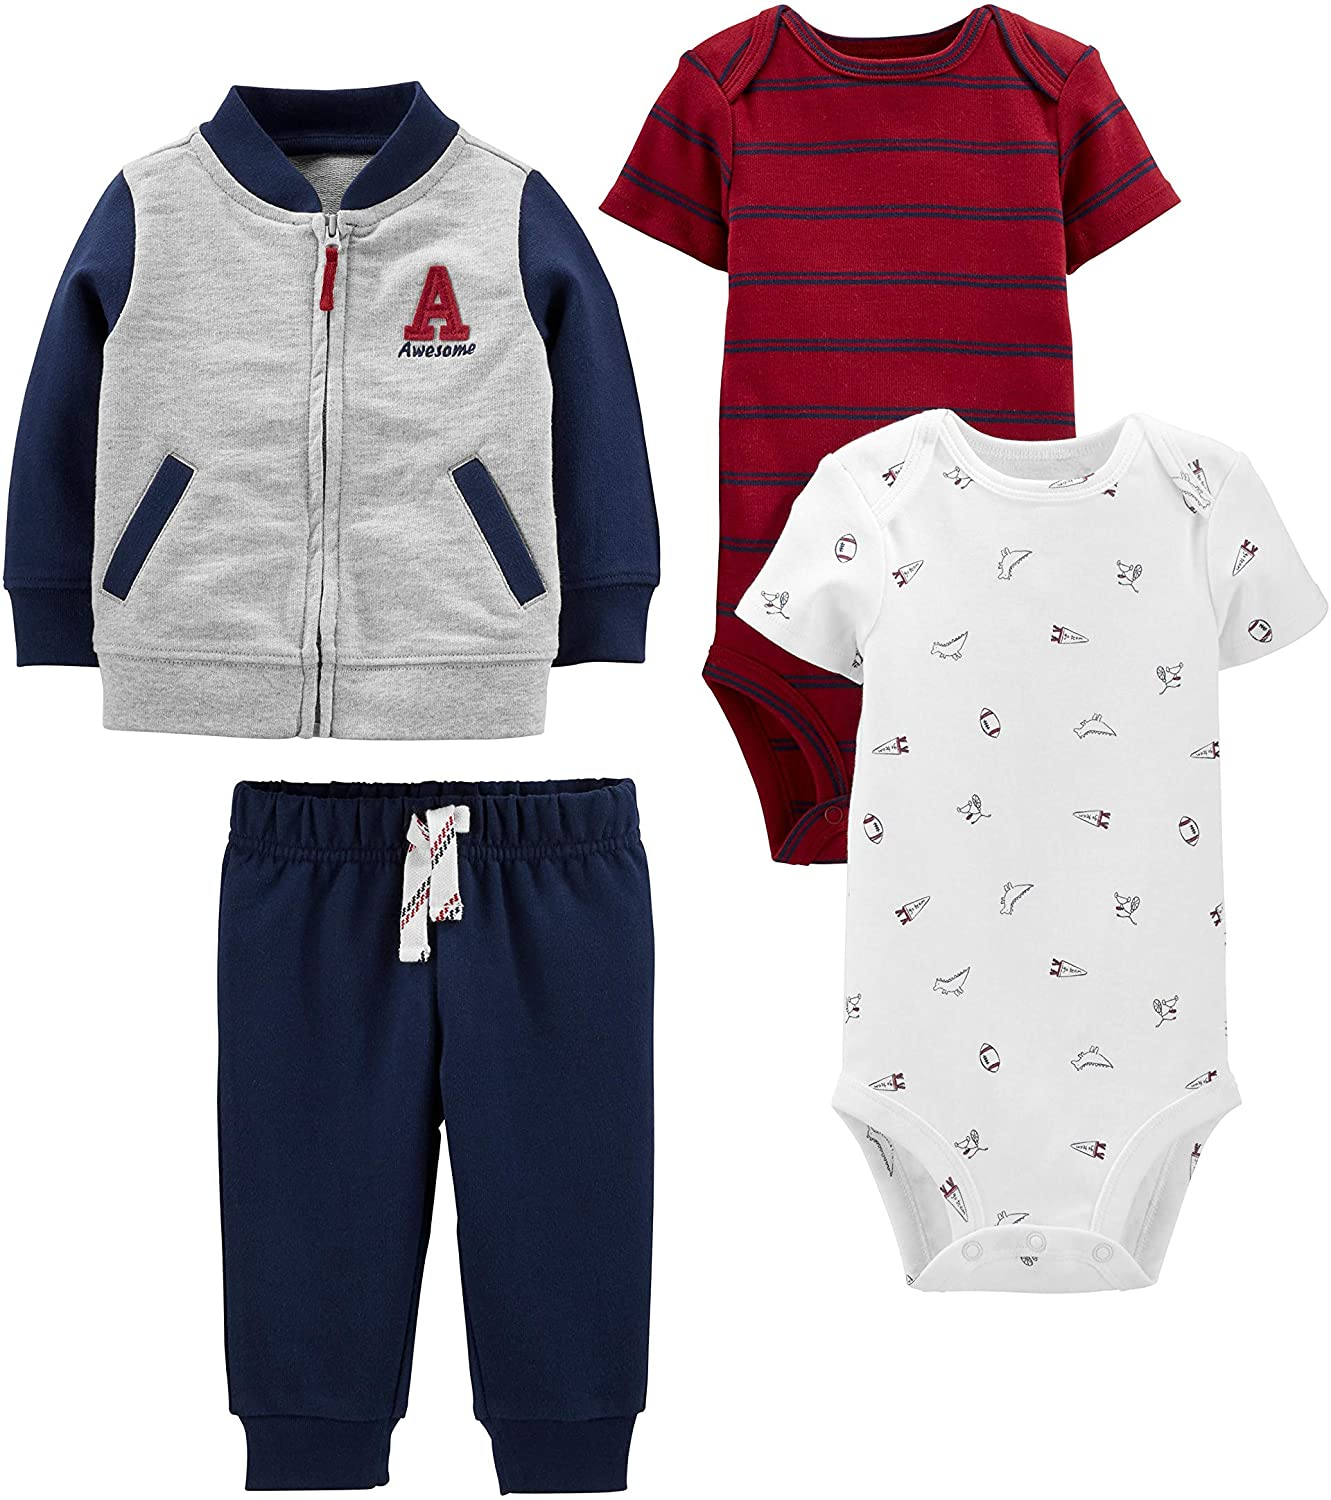 Simple Joys by Carter's Boys' 4-Piece Fleece Jacket, Pant, and Bodysuit Set